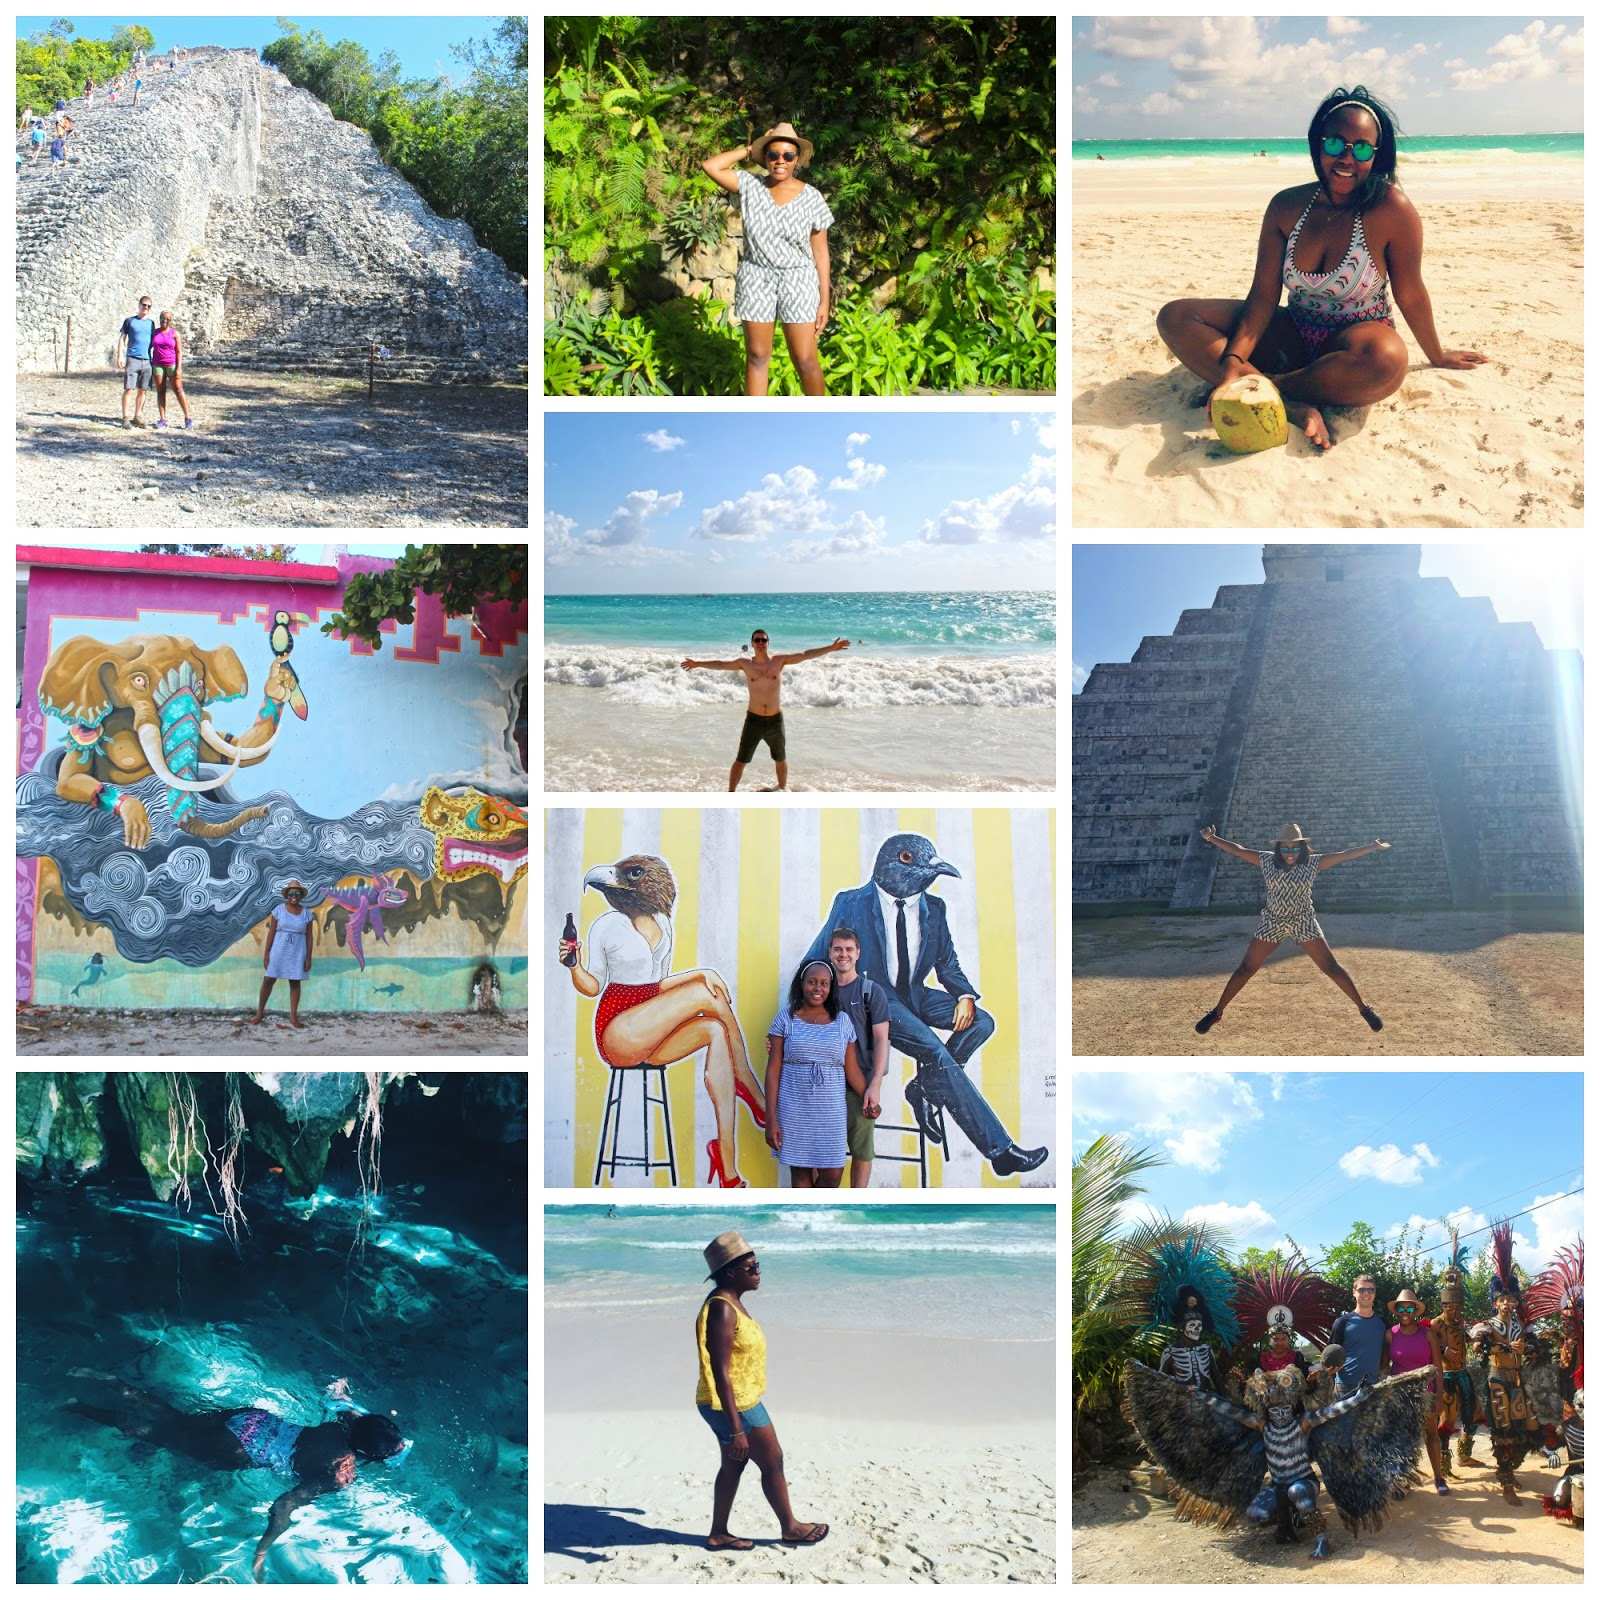 Mexico Road Trip: The Yucatan Peninsula